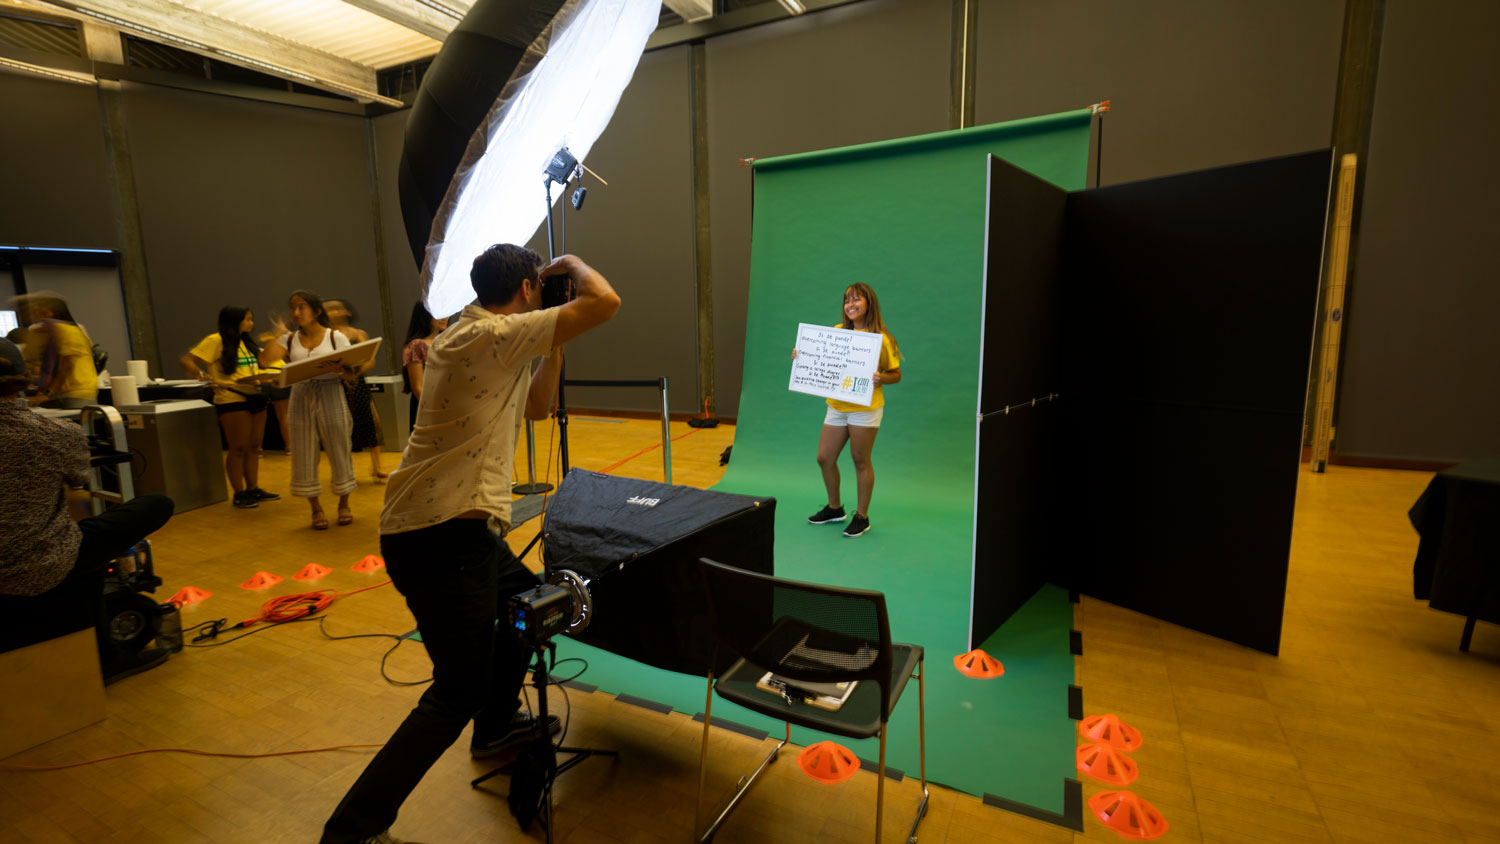 A student poses with a white board for the I Am Cal Poly project while a photographer takes their photo